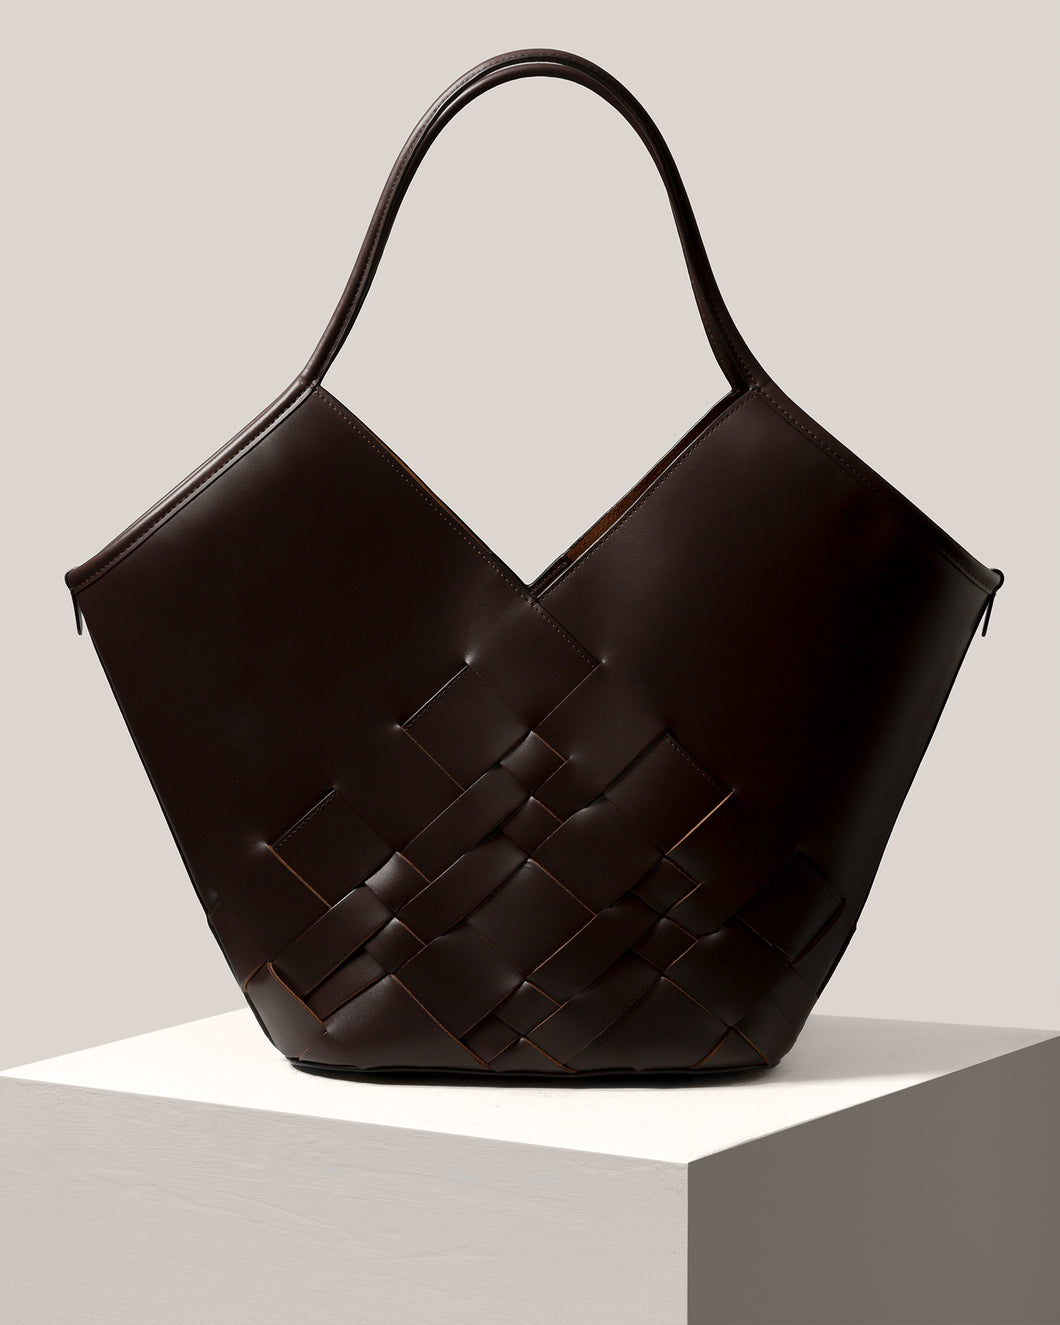 COLOMA - Interwoven Leather Tote